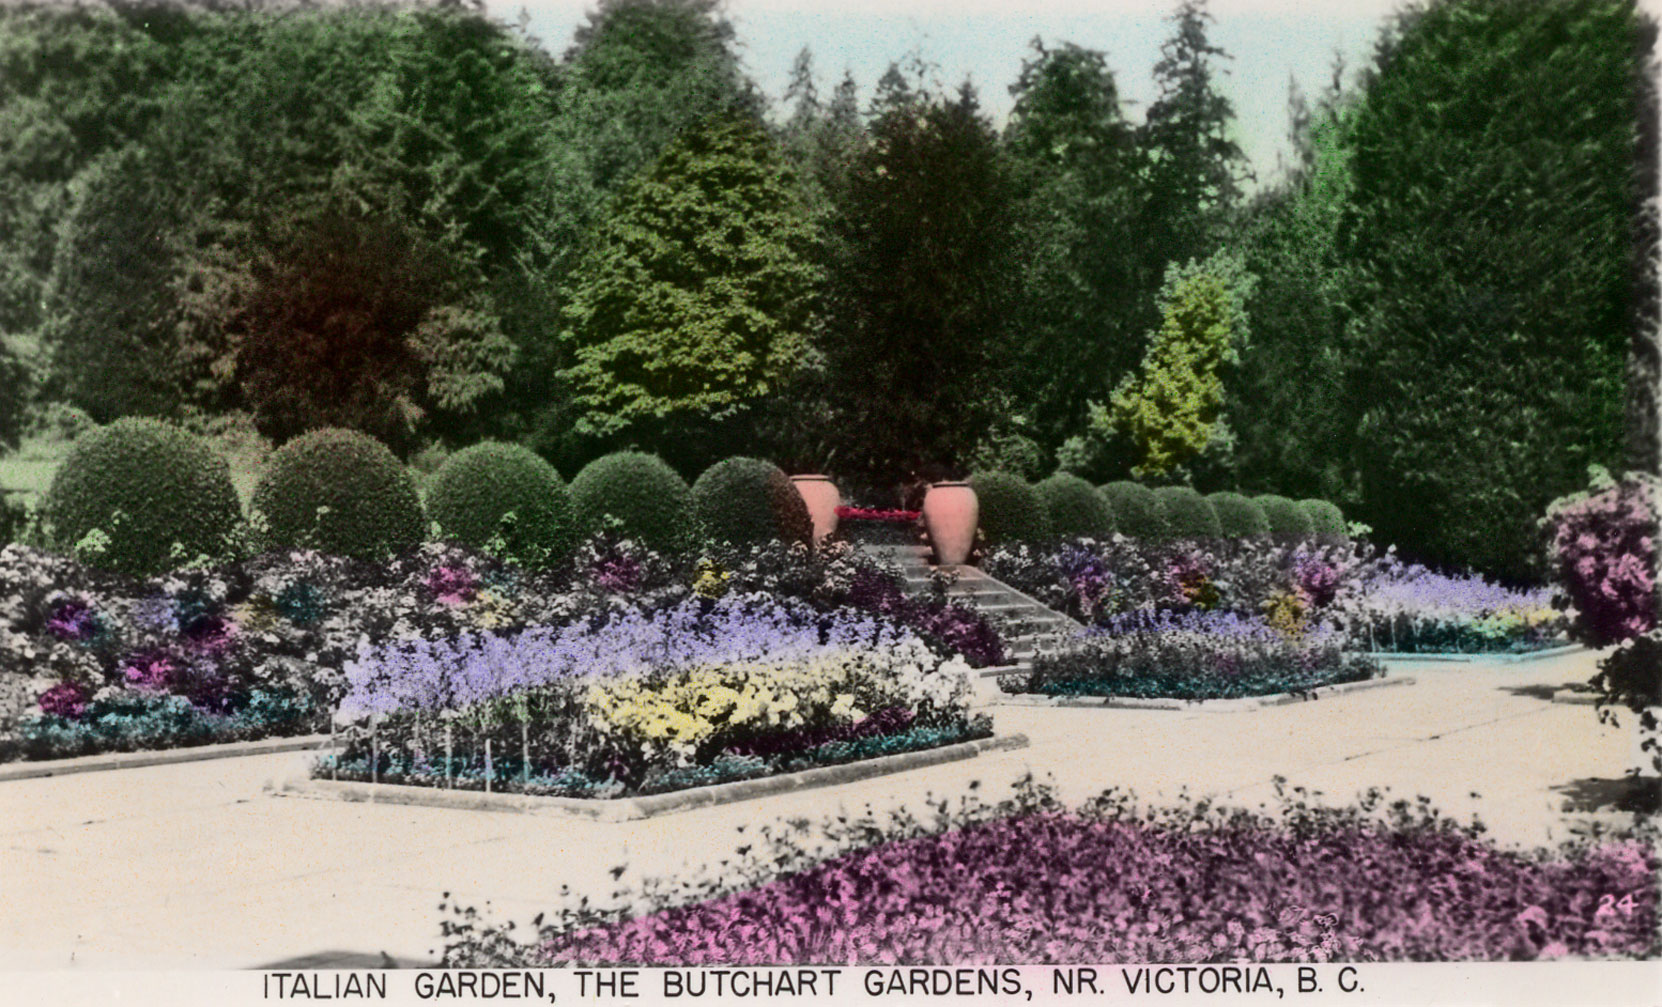 Postcard of the Italian Garden, circa 1940 (Author's collection)